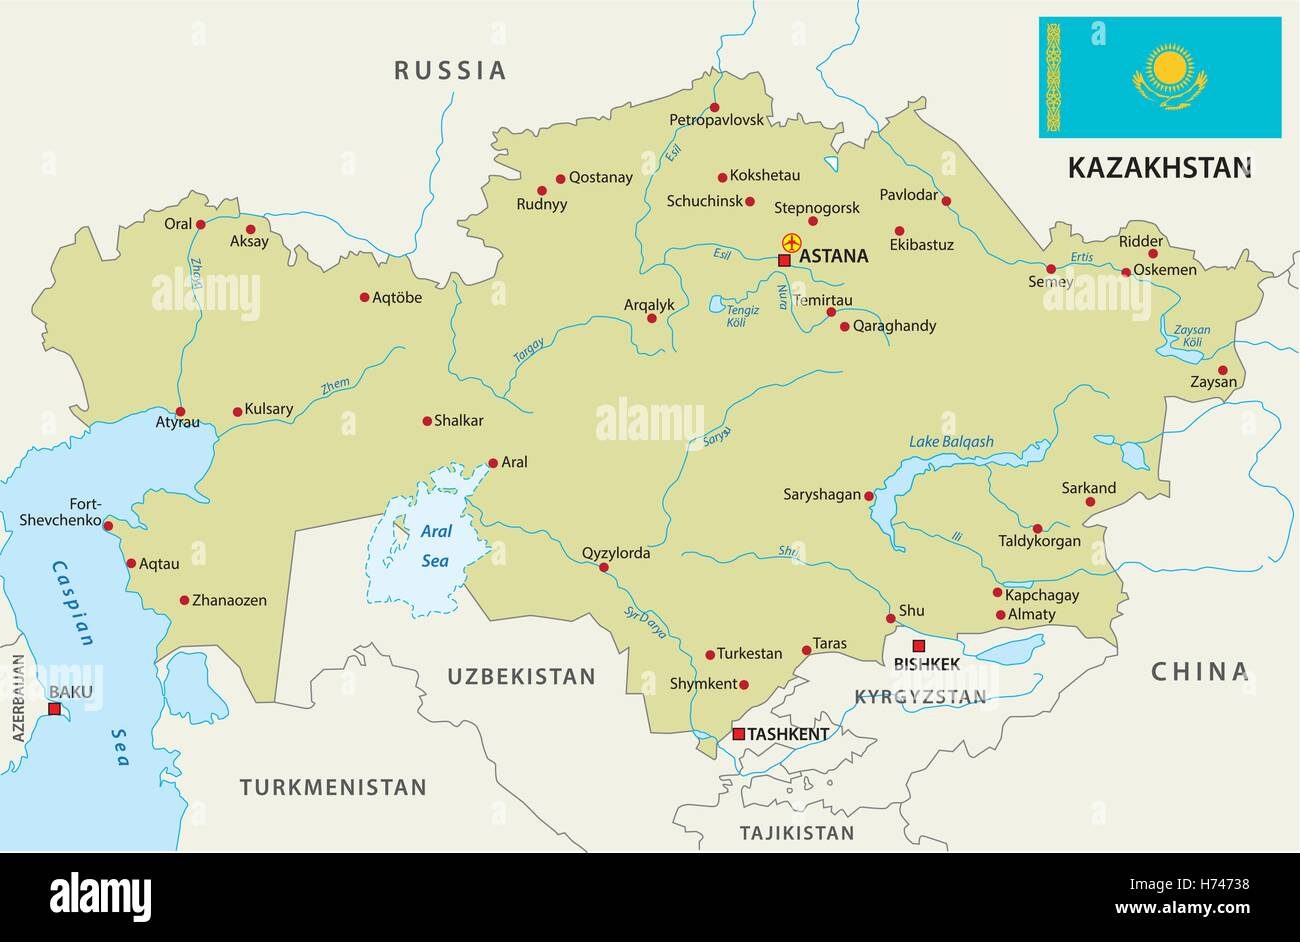 kazakhstan map with flag - Stock Image